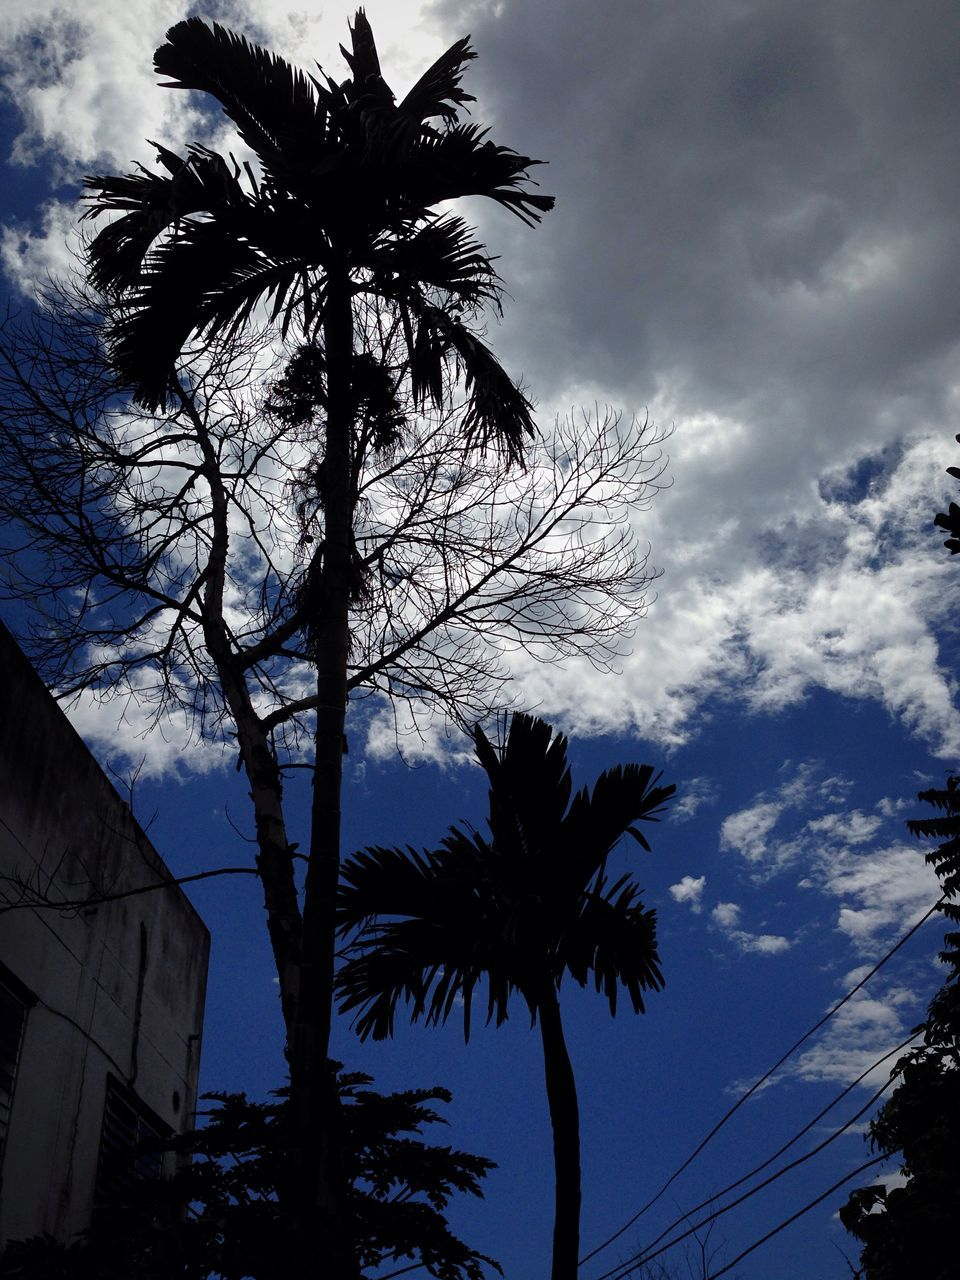 low angle view, tree, sky, cloud - sky, palm tree, silhouette, outdoors, nature, no people, growth, tree trunk, beauty in nature, day, building exterior, branch, built structure, architecture